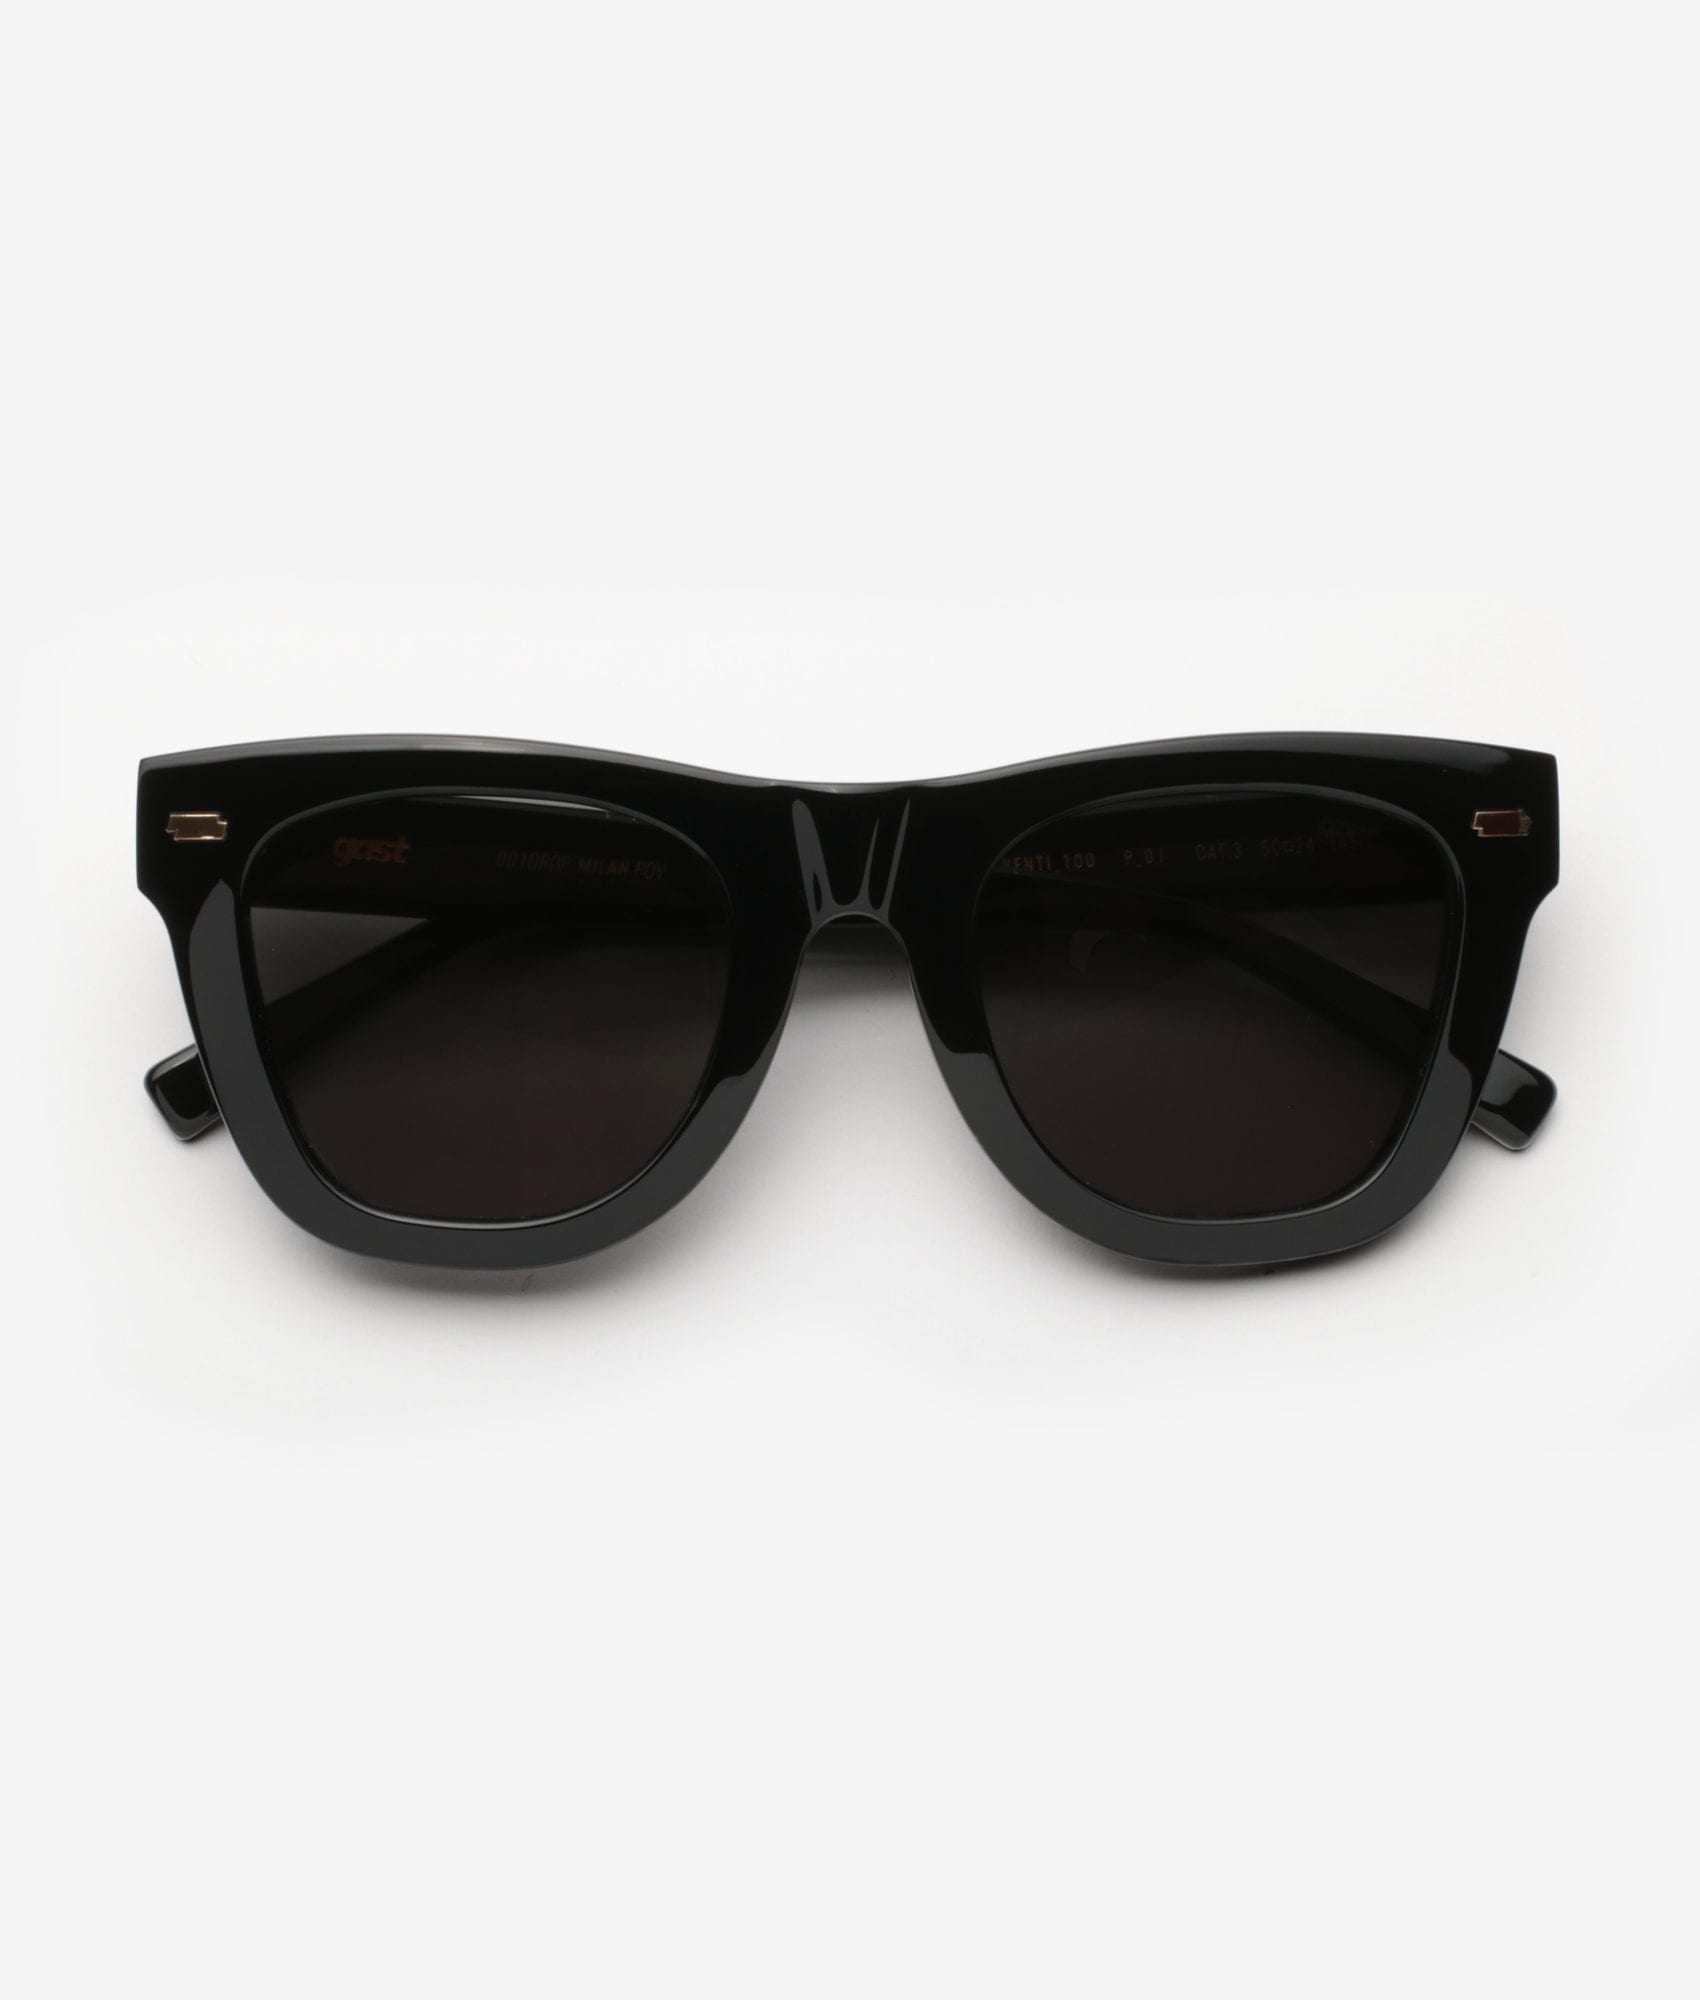 VENTI 100 Black Gast Sunglasses